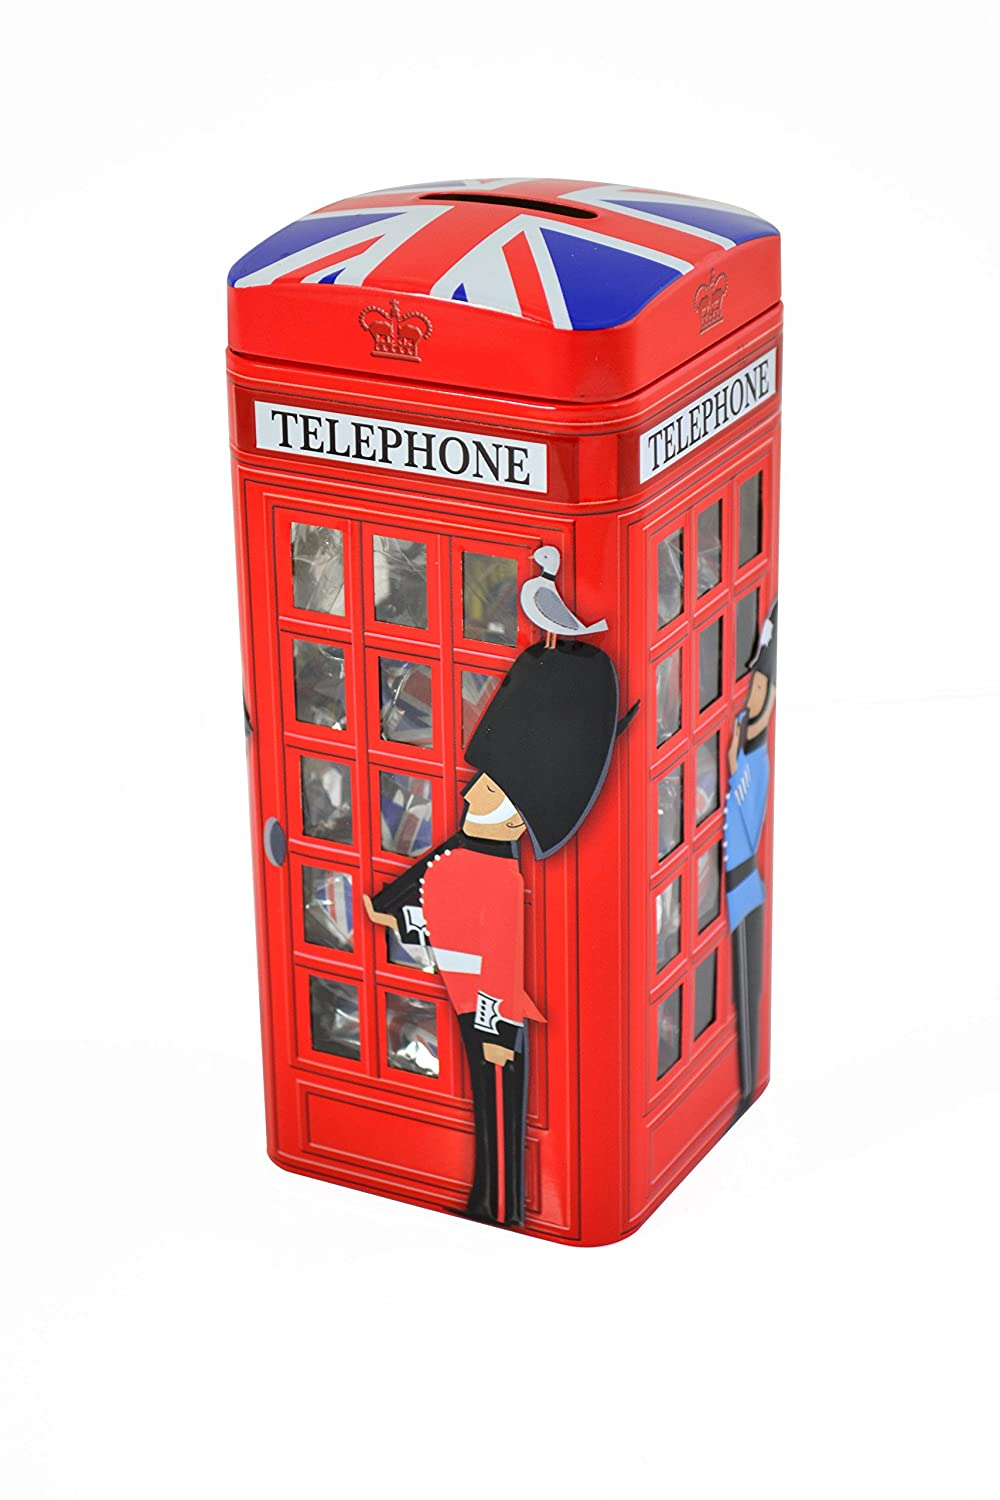 British Phone Box Confectionery & Money Box Tin 200g The Silver Crane Company Ltd